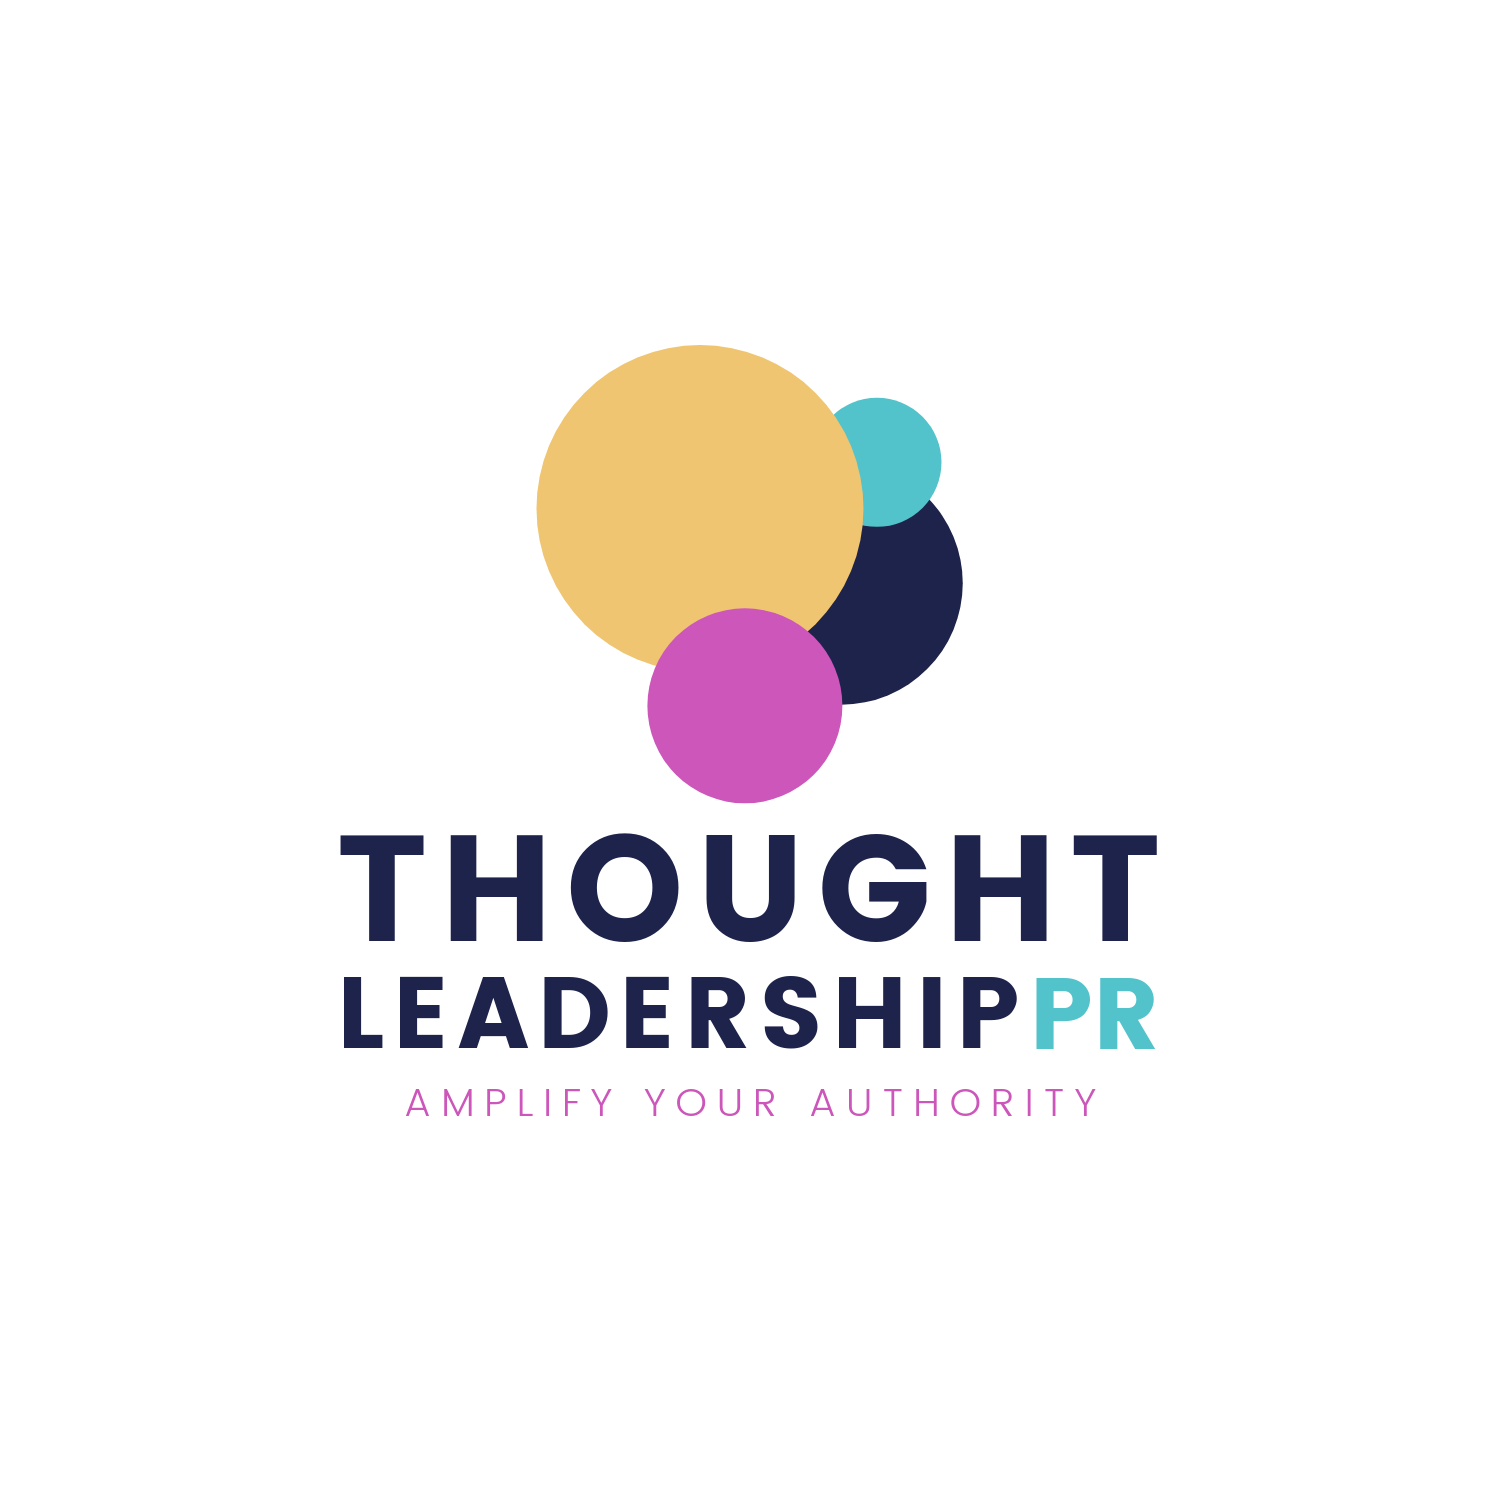 Become A Thought Leader with the right PR